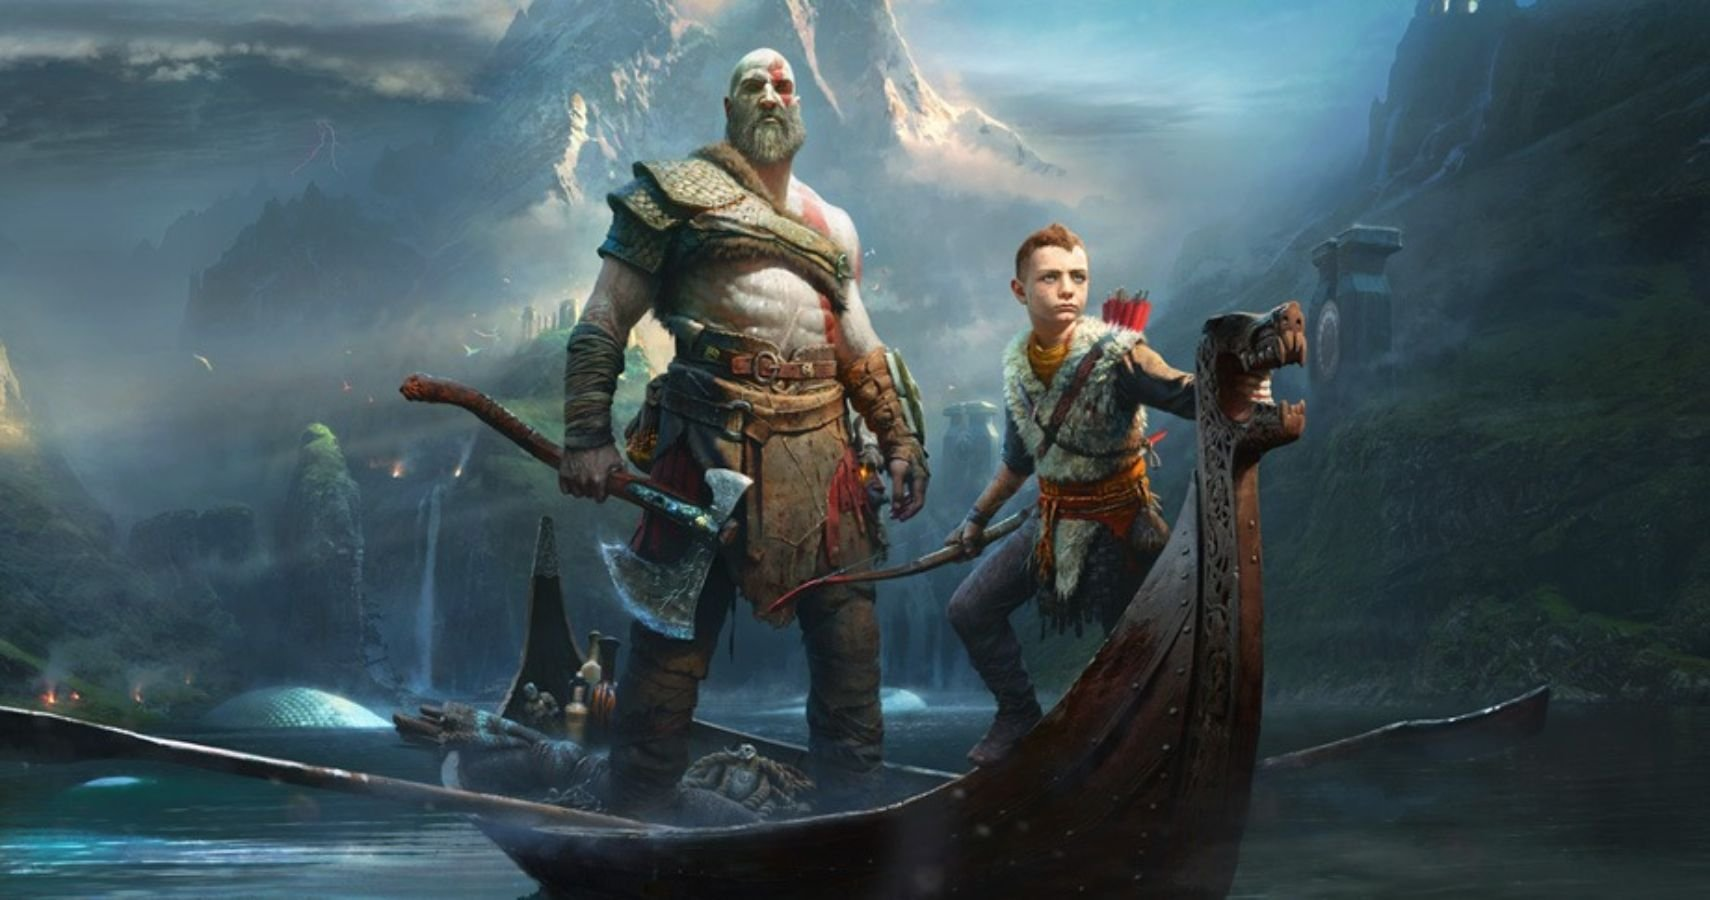 God Of War Sequel Delayed To 2022